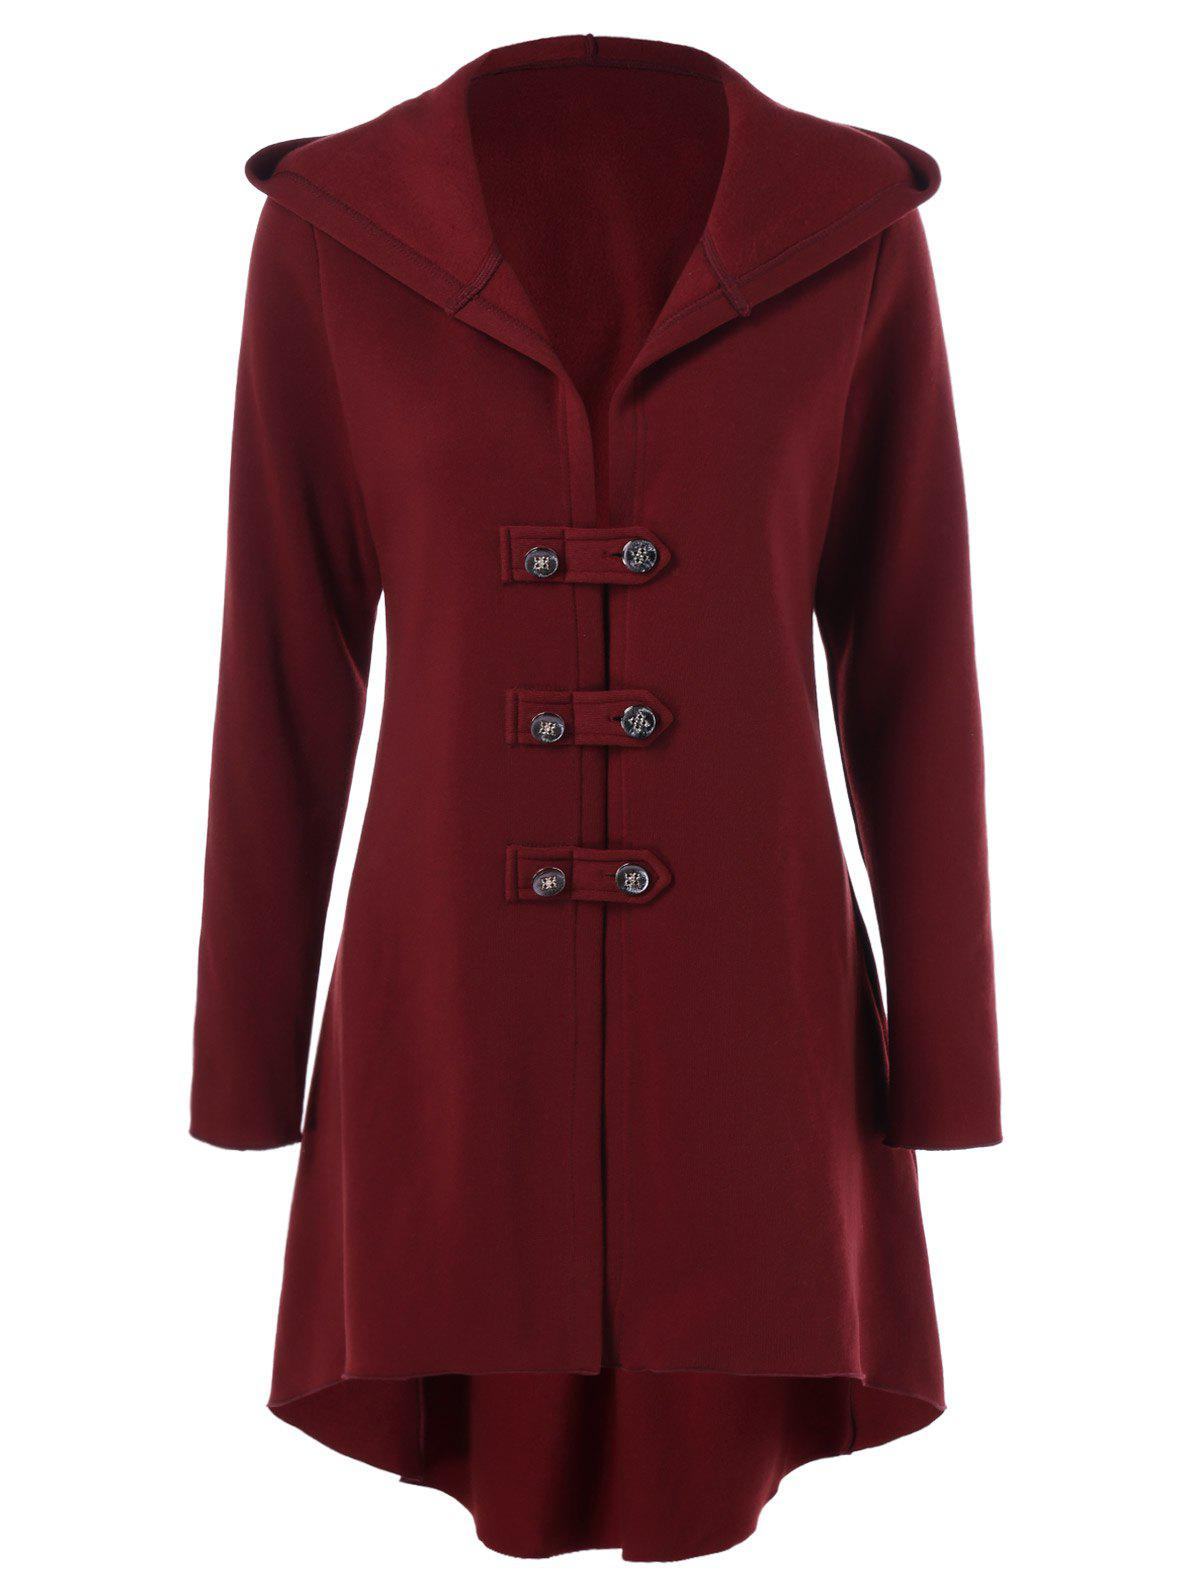 Lace-Up High Low Hem Coat - DEEP RED XL